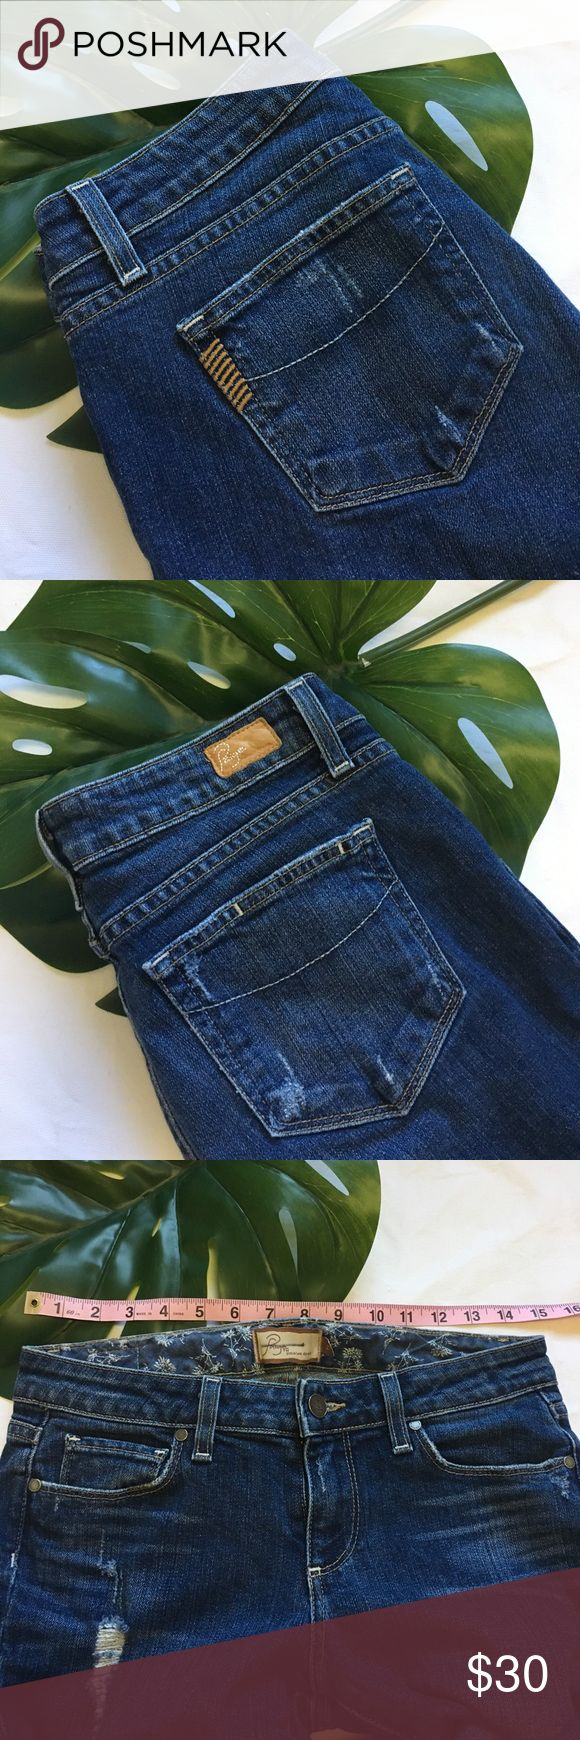 """Paige •Hollywood Hills• Classic rise boot cut. **Please note** The tag says size """"27"""", it was mislabeled! These jeans are a size 29 as listed. They have also been hemmed and the length is 29""""! If this works with you're measurements you're one lucky lady! Light wear around the cuffs, otherwise great used condition. Please ask any questions if interested, As always I am open to offers! Paige Jeans Jeans"""